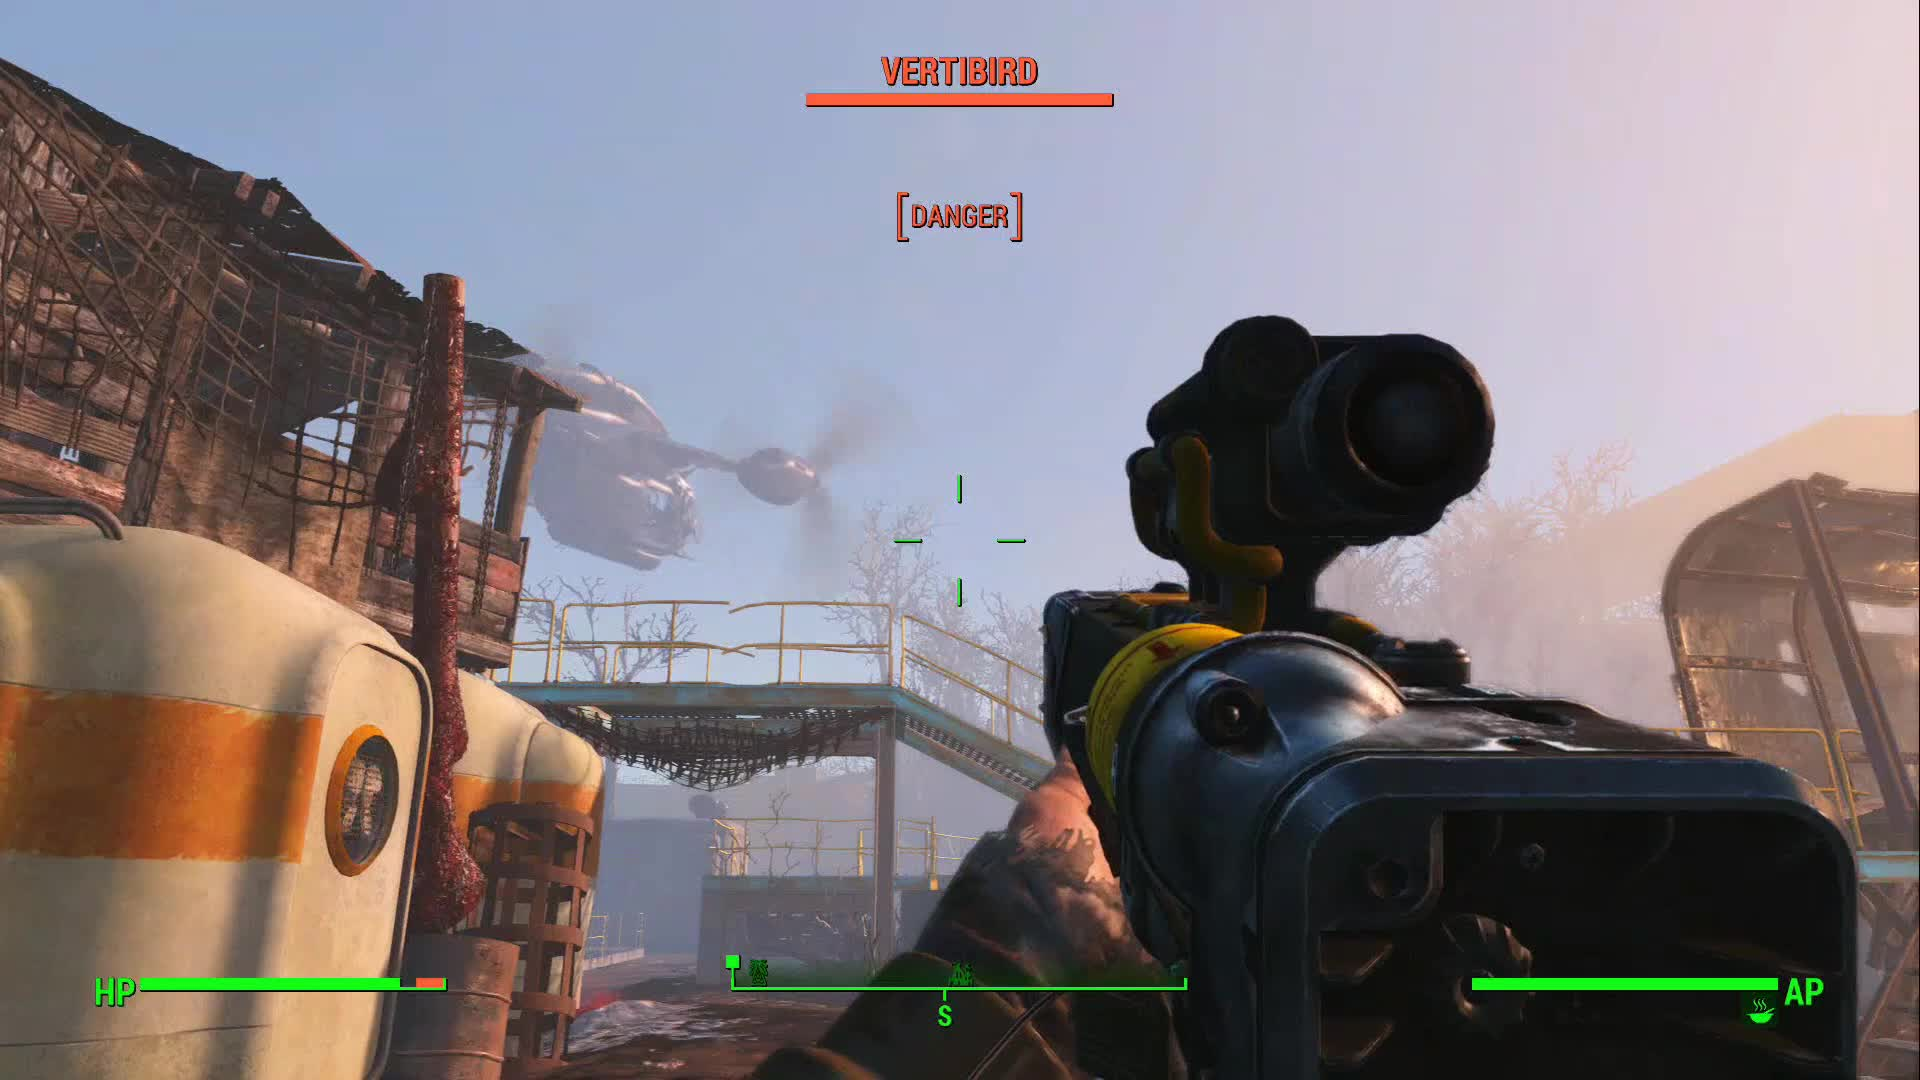 fallout4, gunner, xboxone, Gunners Attack Me With Vertibird - Stranger Finishes Them GIFs